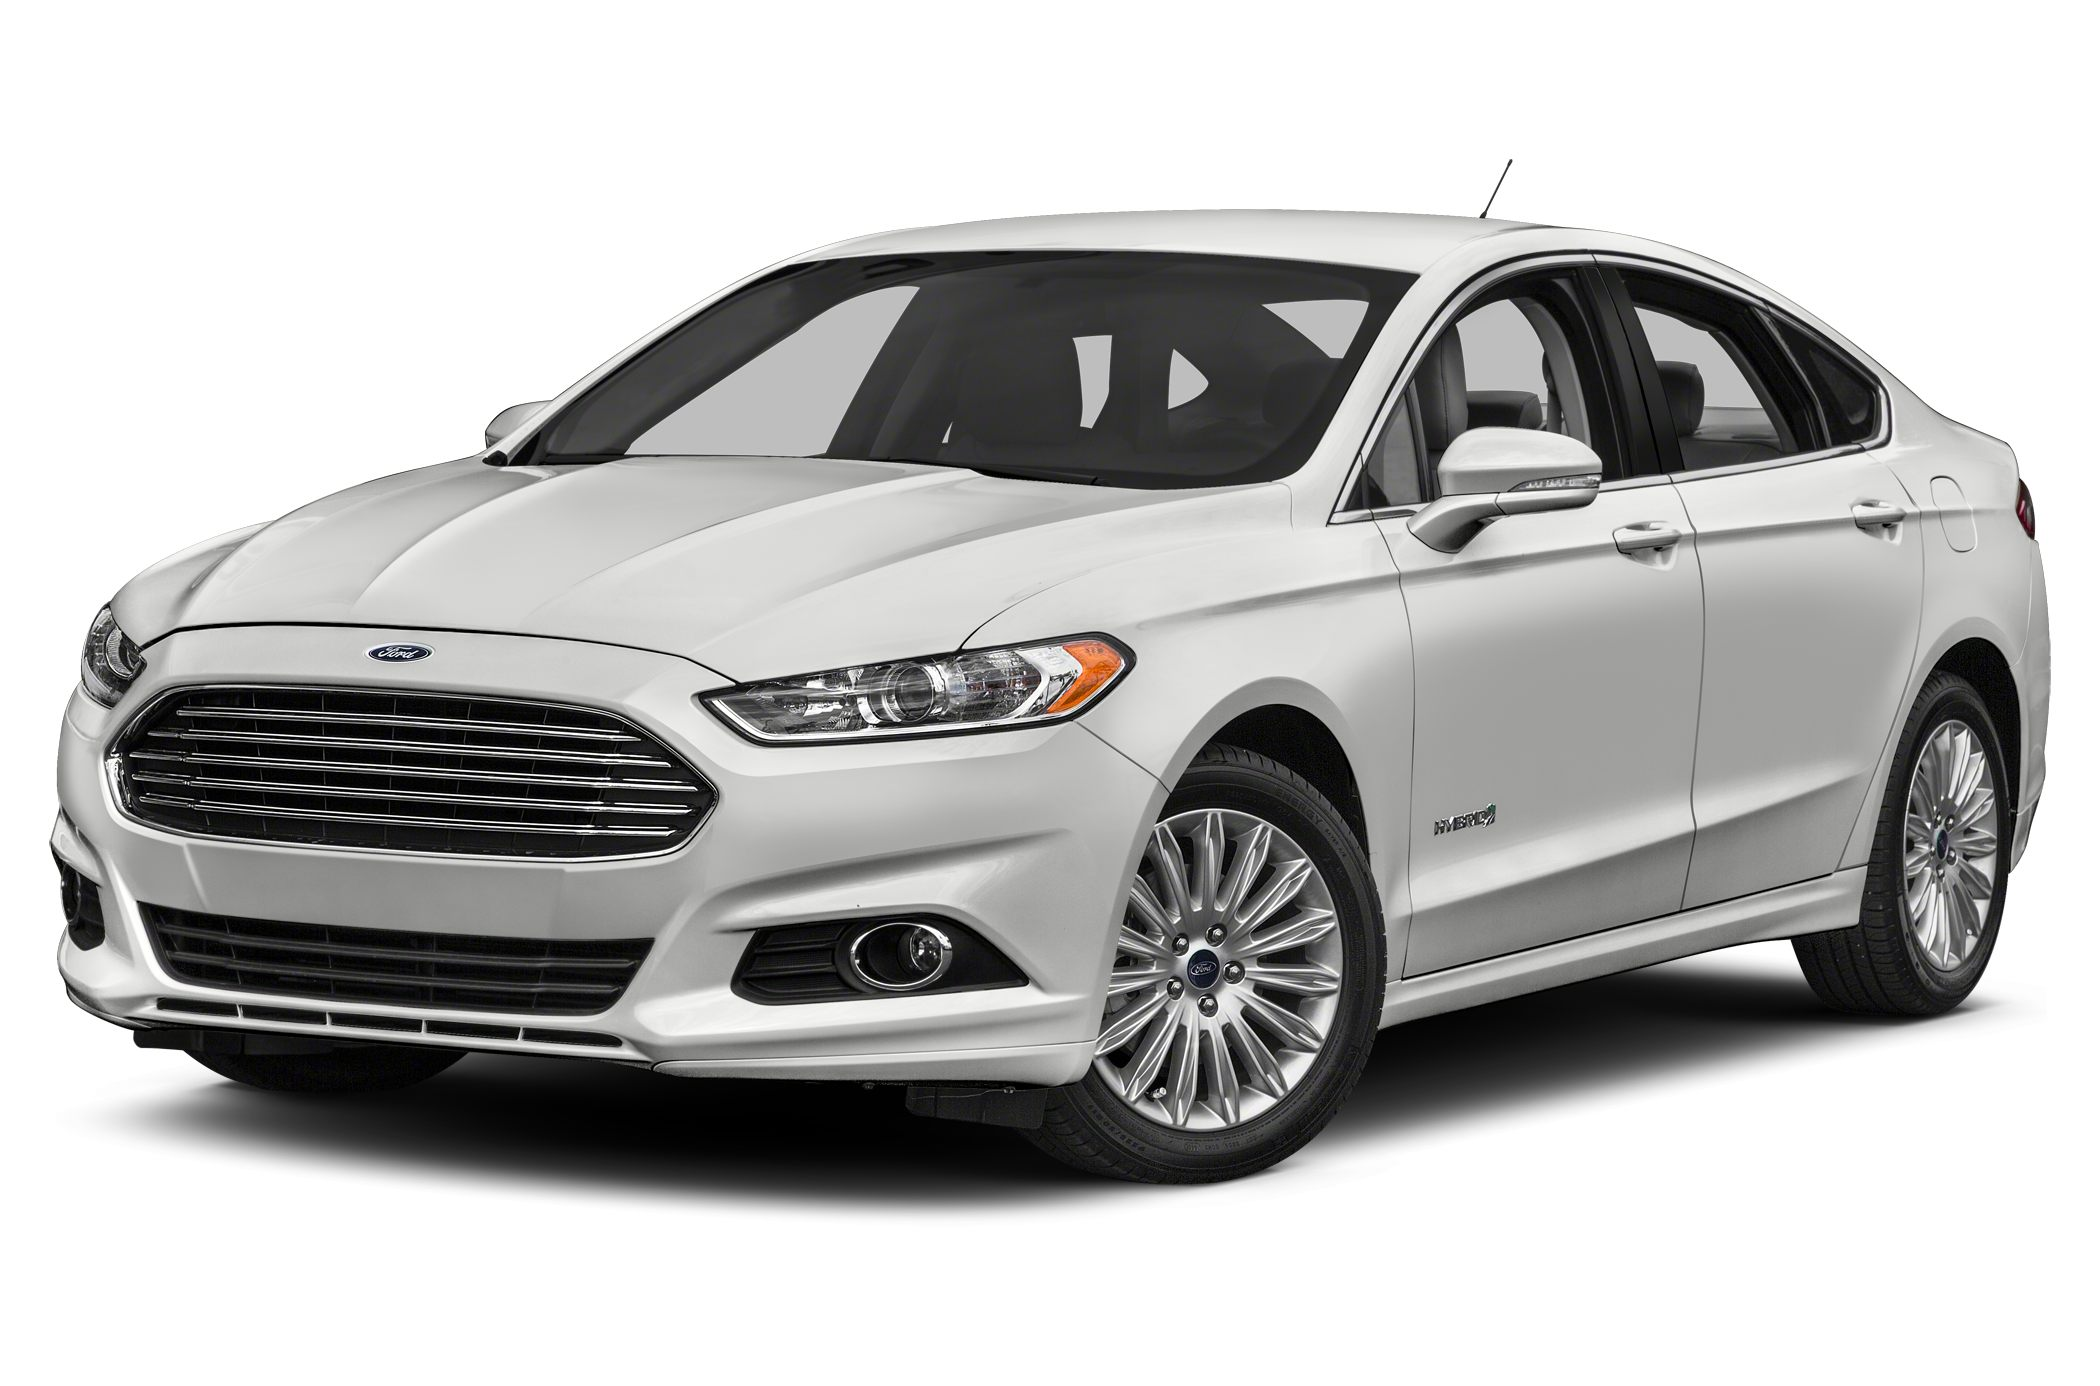 2013 ford fusion hybrid. Black Bedroom Furniture Sets. Home Design Ideas